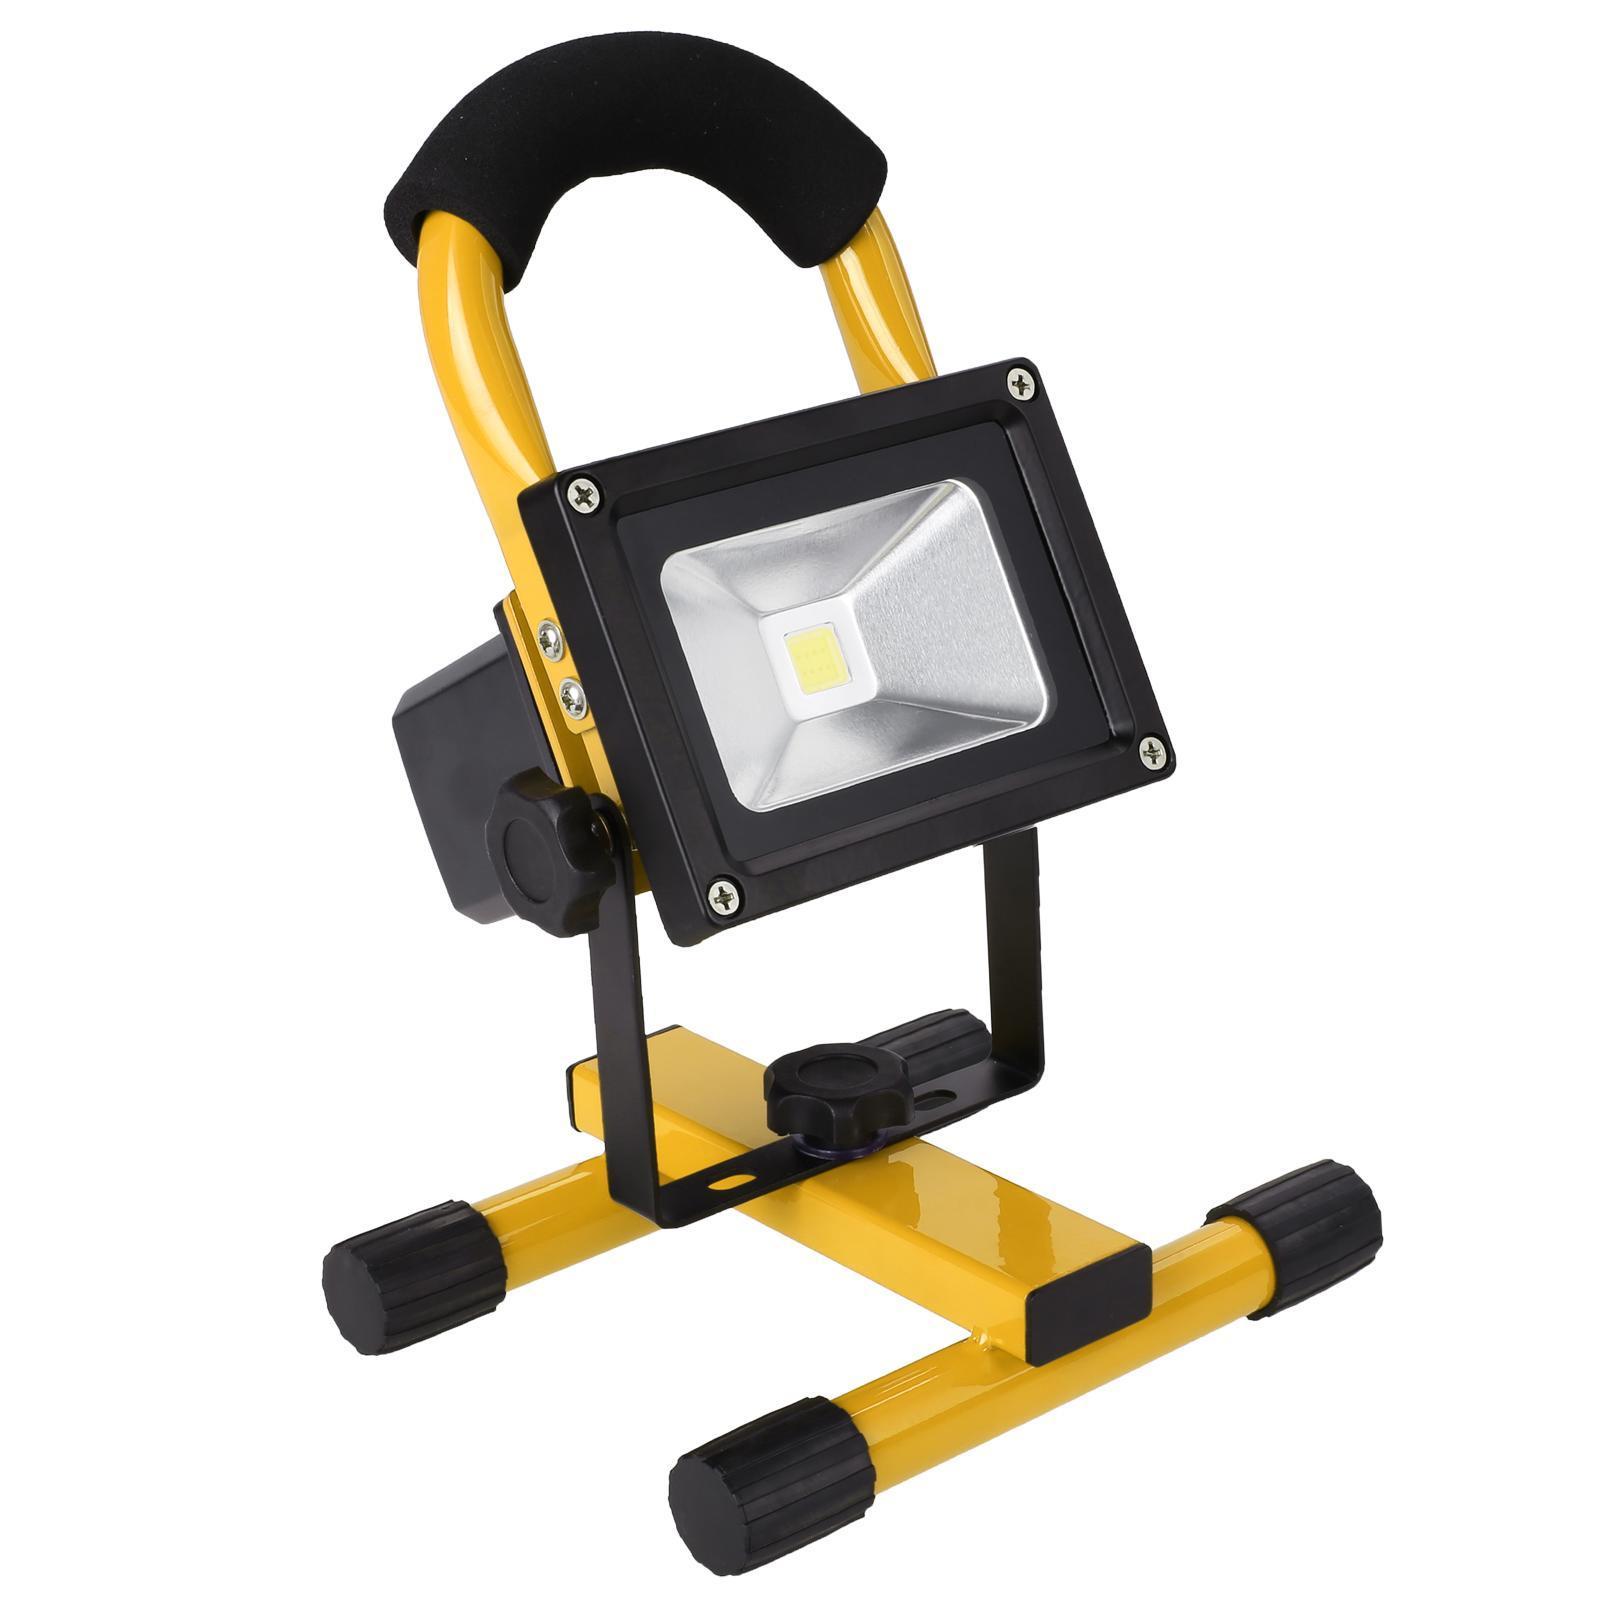 10W Wireless Rechargeable LED Flood Light, Outdoor Camping Hiking Lamp US Plug  OCTAP